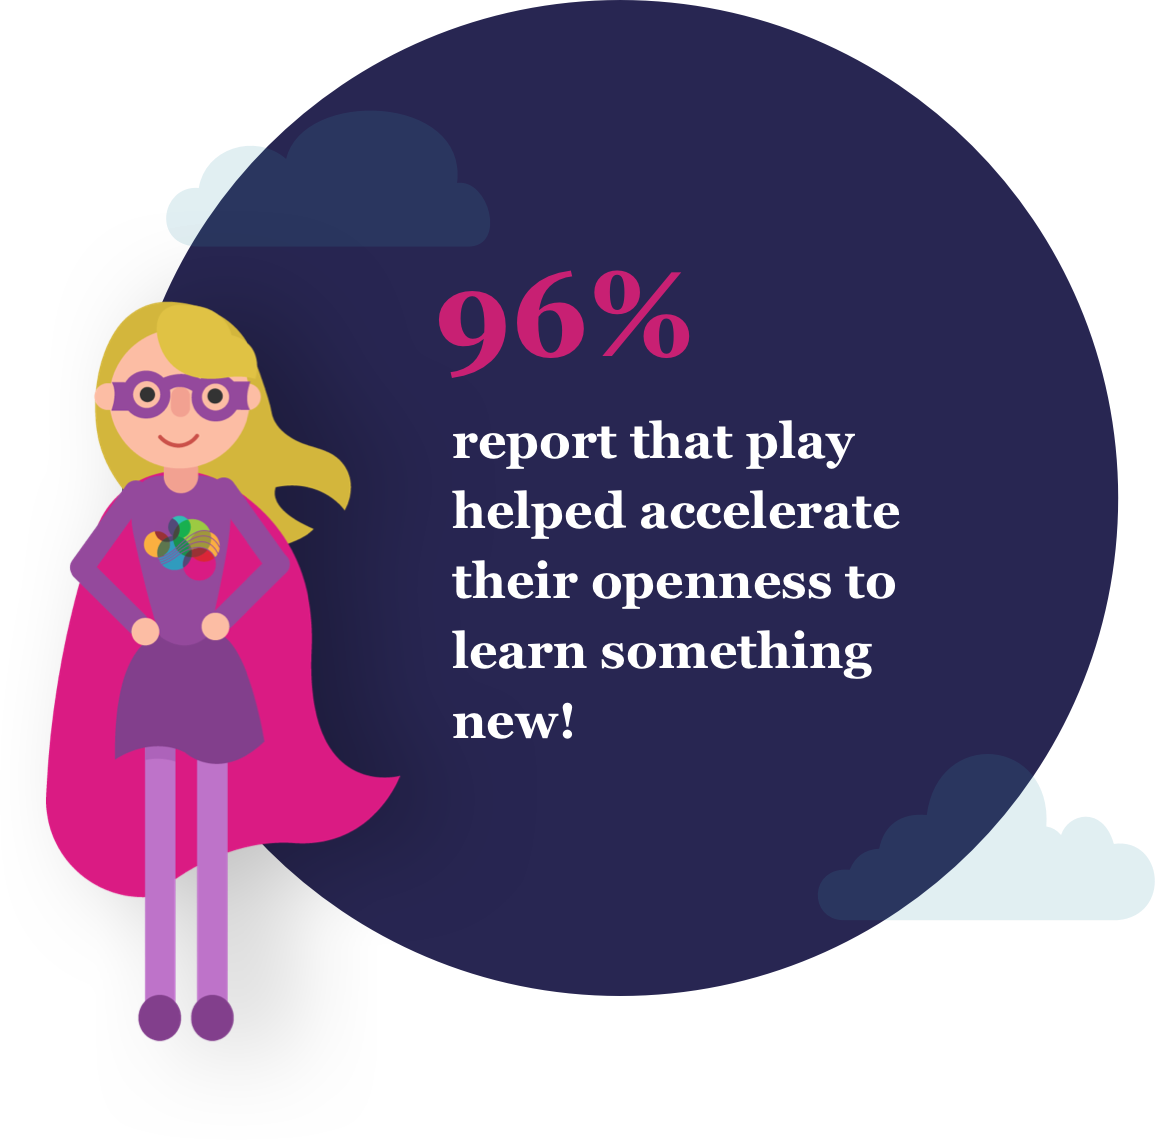 96% report that play helped accelerate their openness to learn something new!